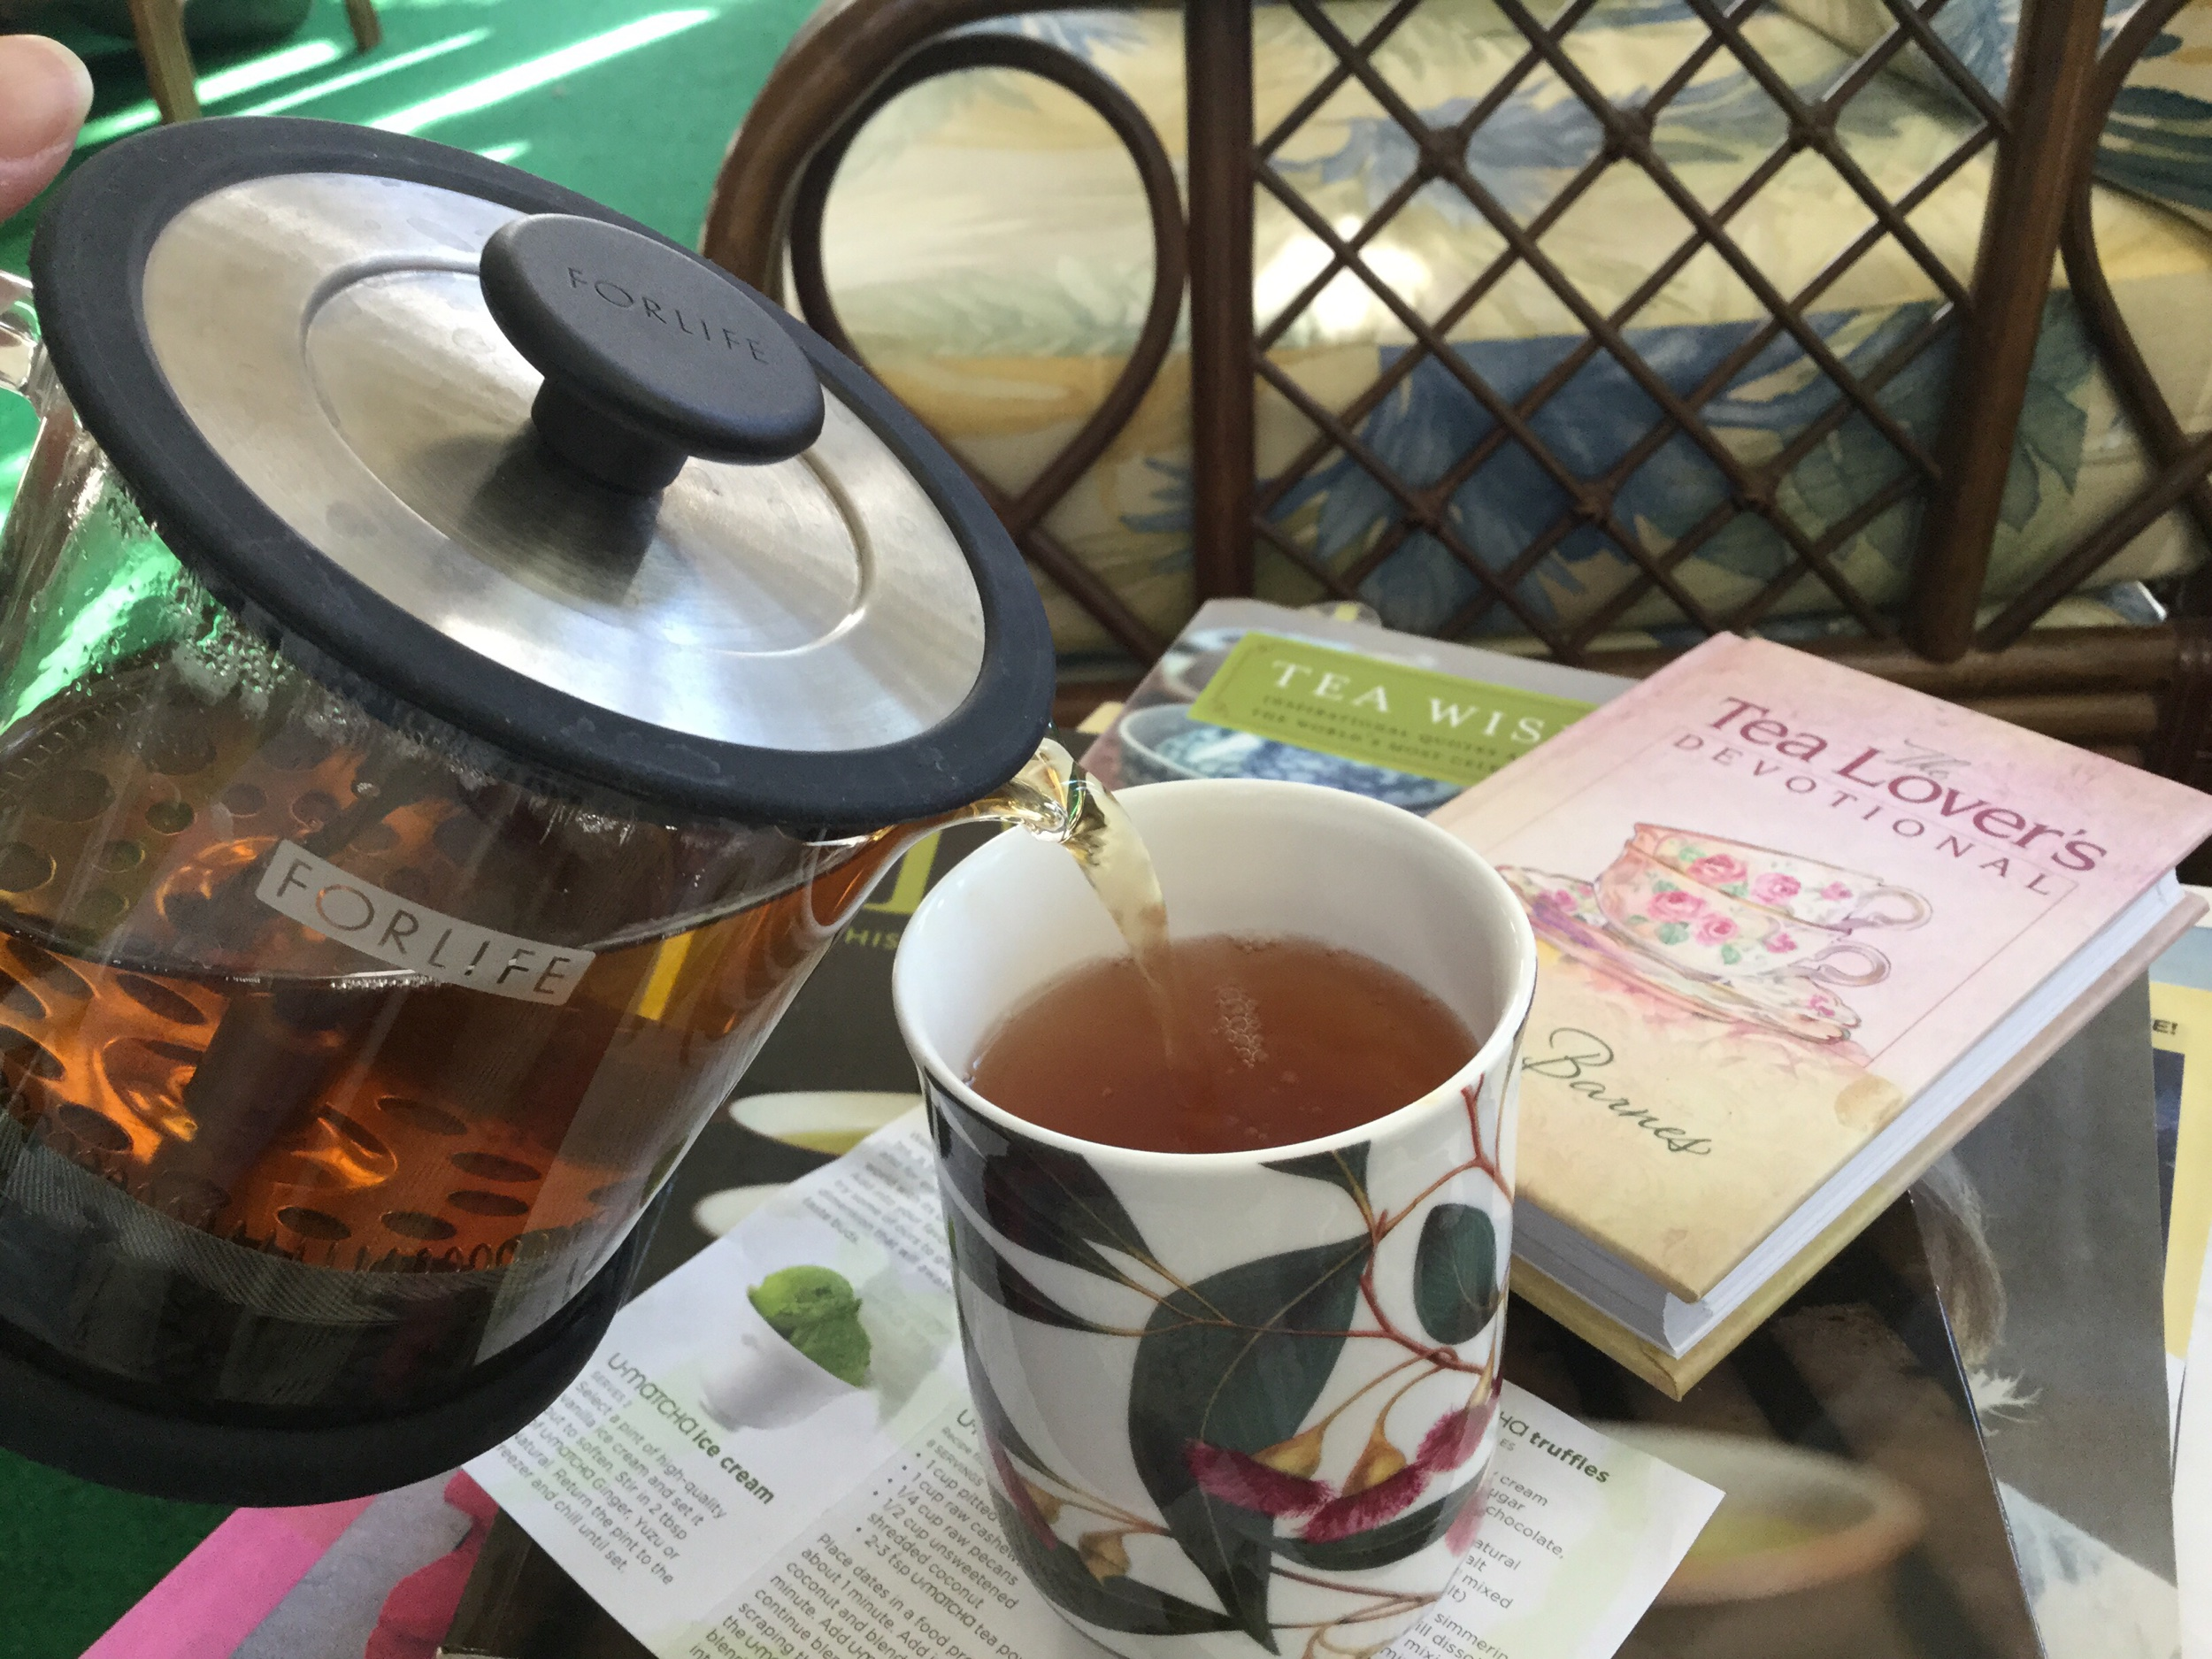 The making of a delightful cuppa tea. Necessary ingredients — quality tea, quality water at the appropriate temperature, steeped for the correct time.